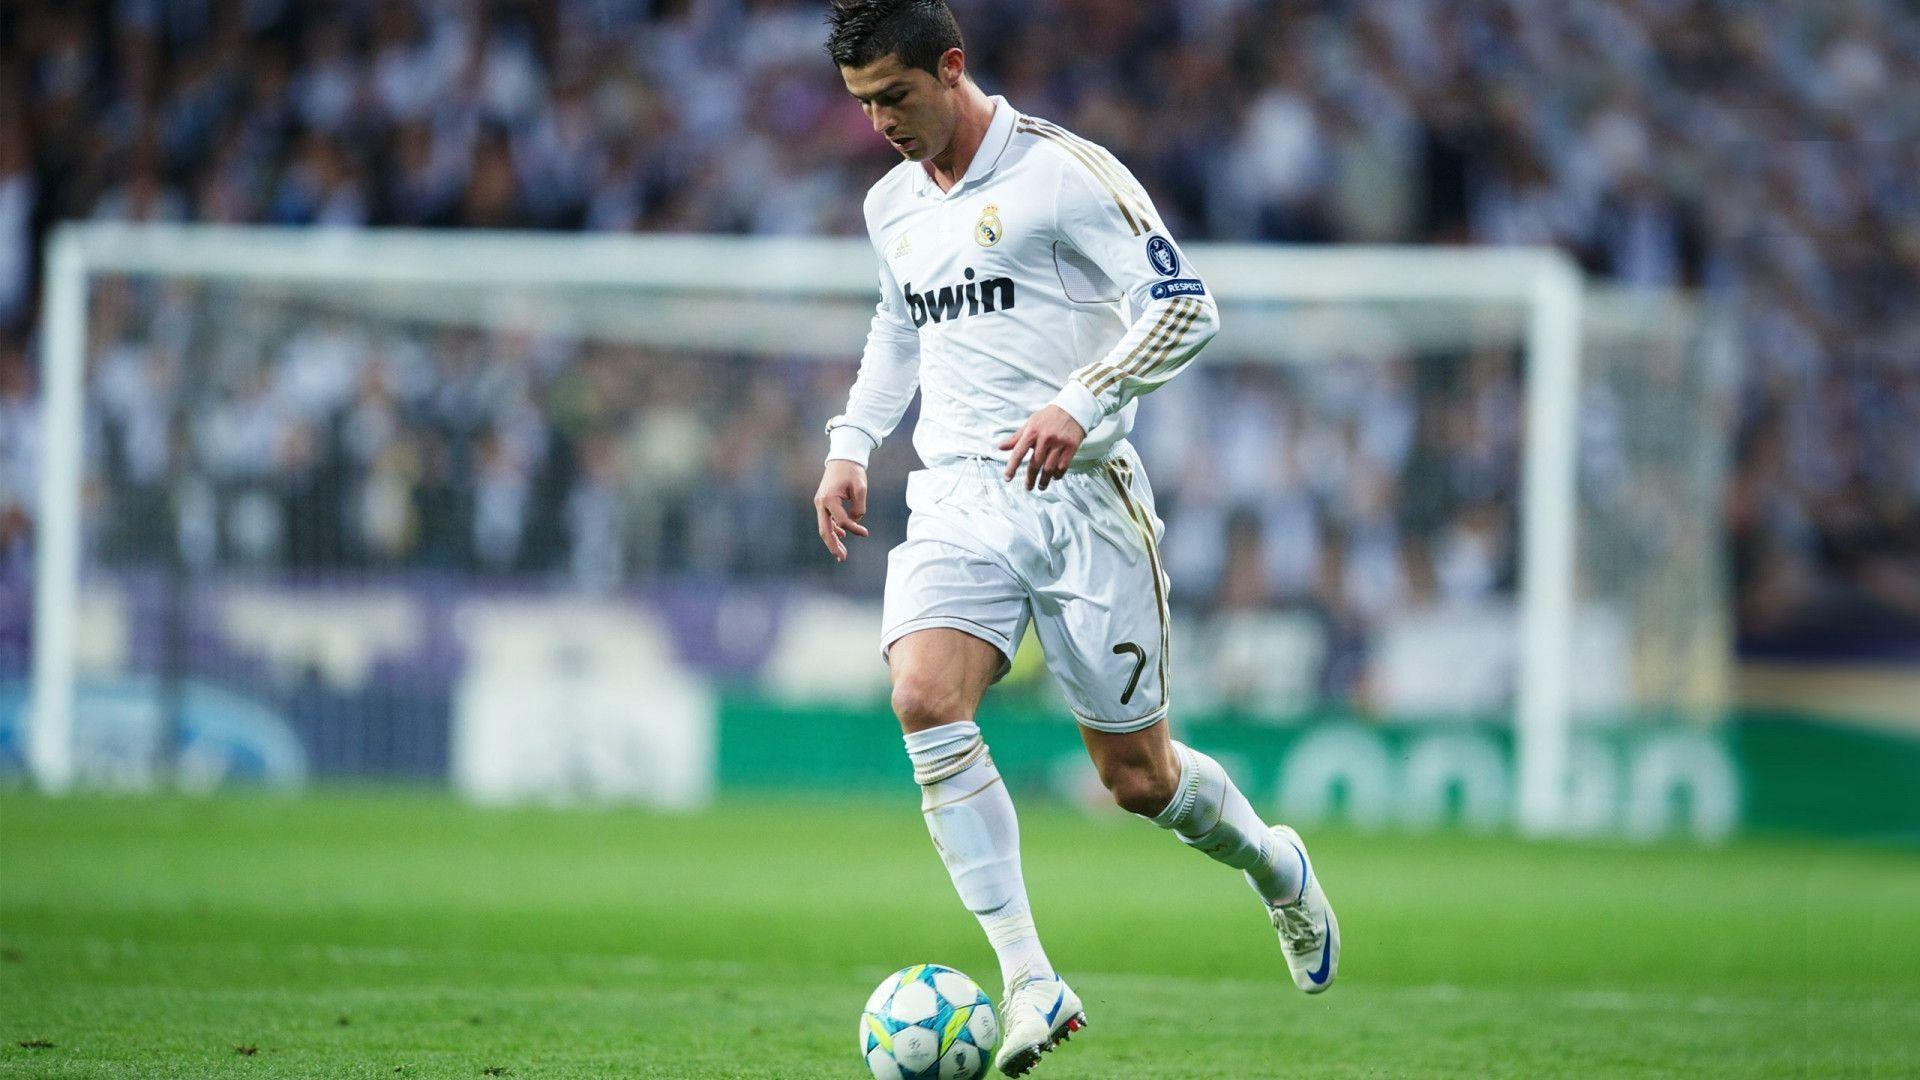 cristiano ronaldo hd wallpapers - wallpaper cave